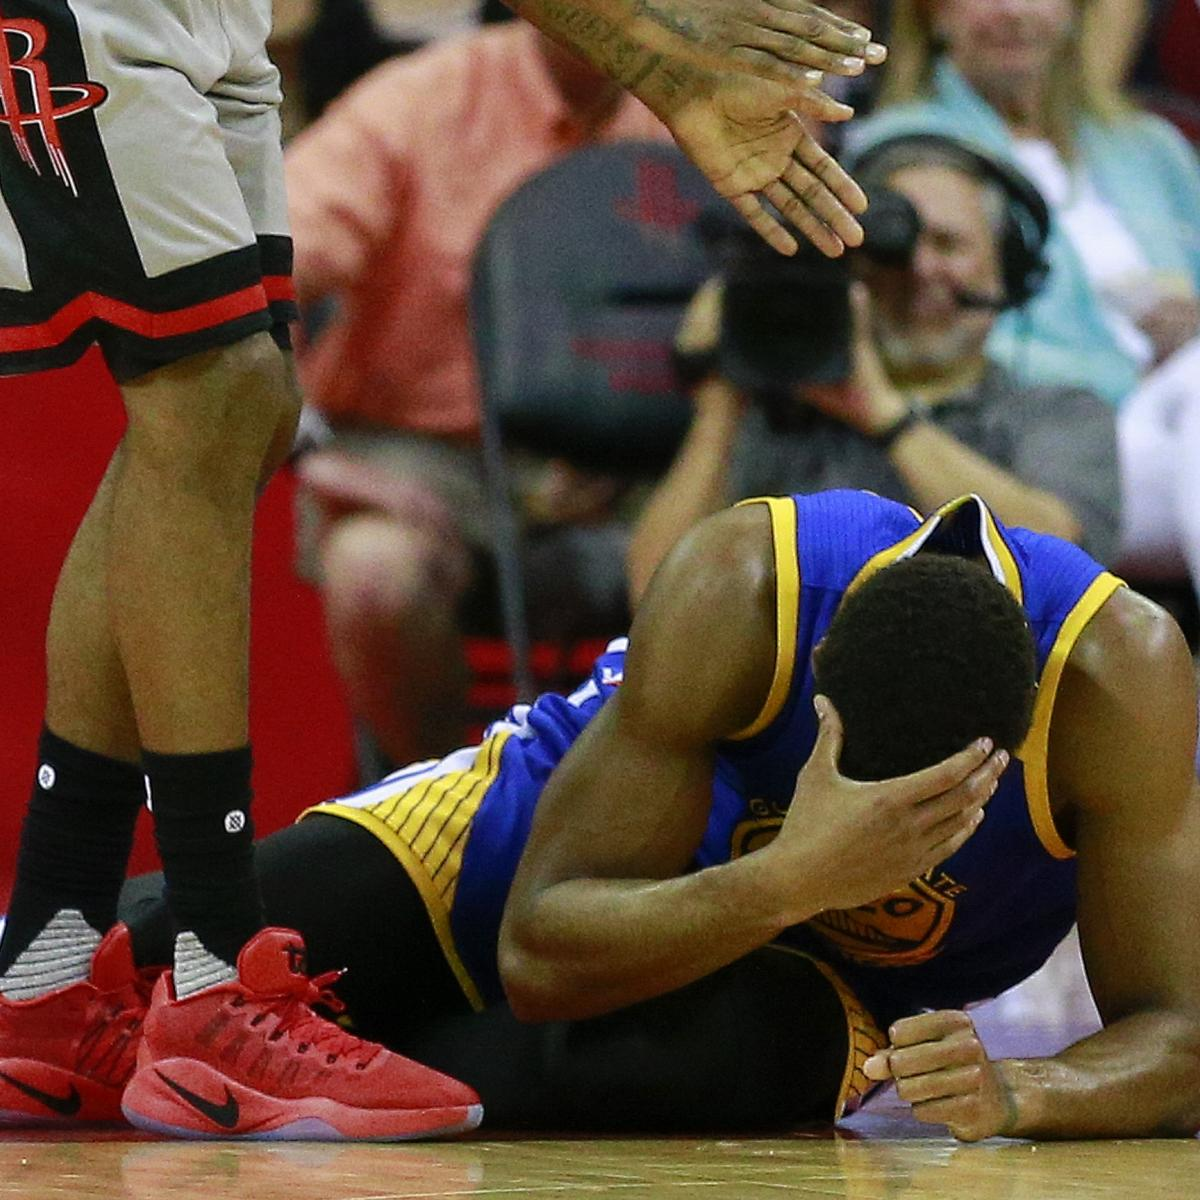 Rockets Vs Warriors Head To Head: James Michael McAdoo Posts Photo Of Face Injury After